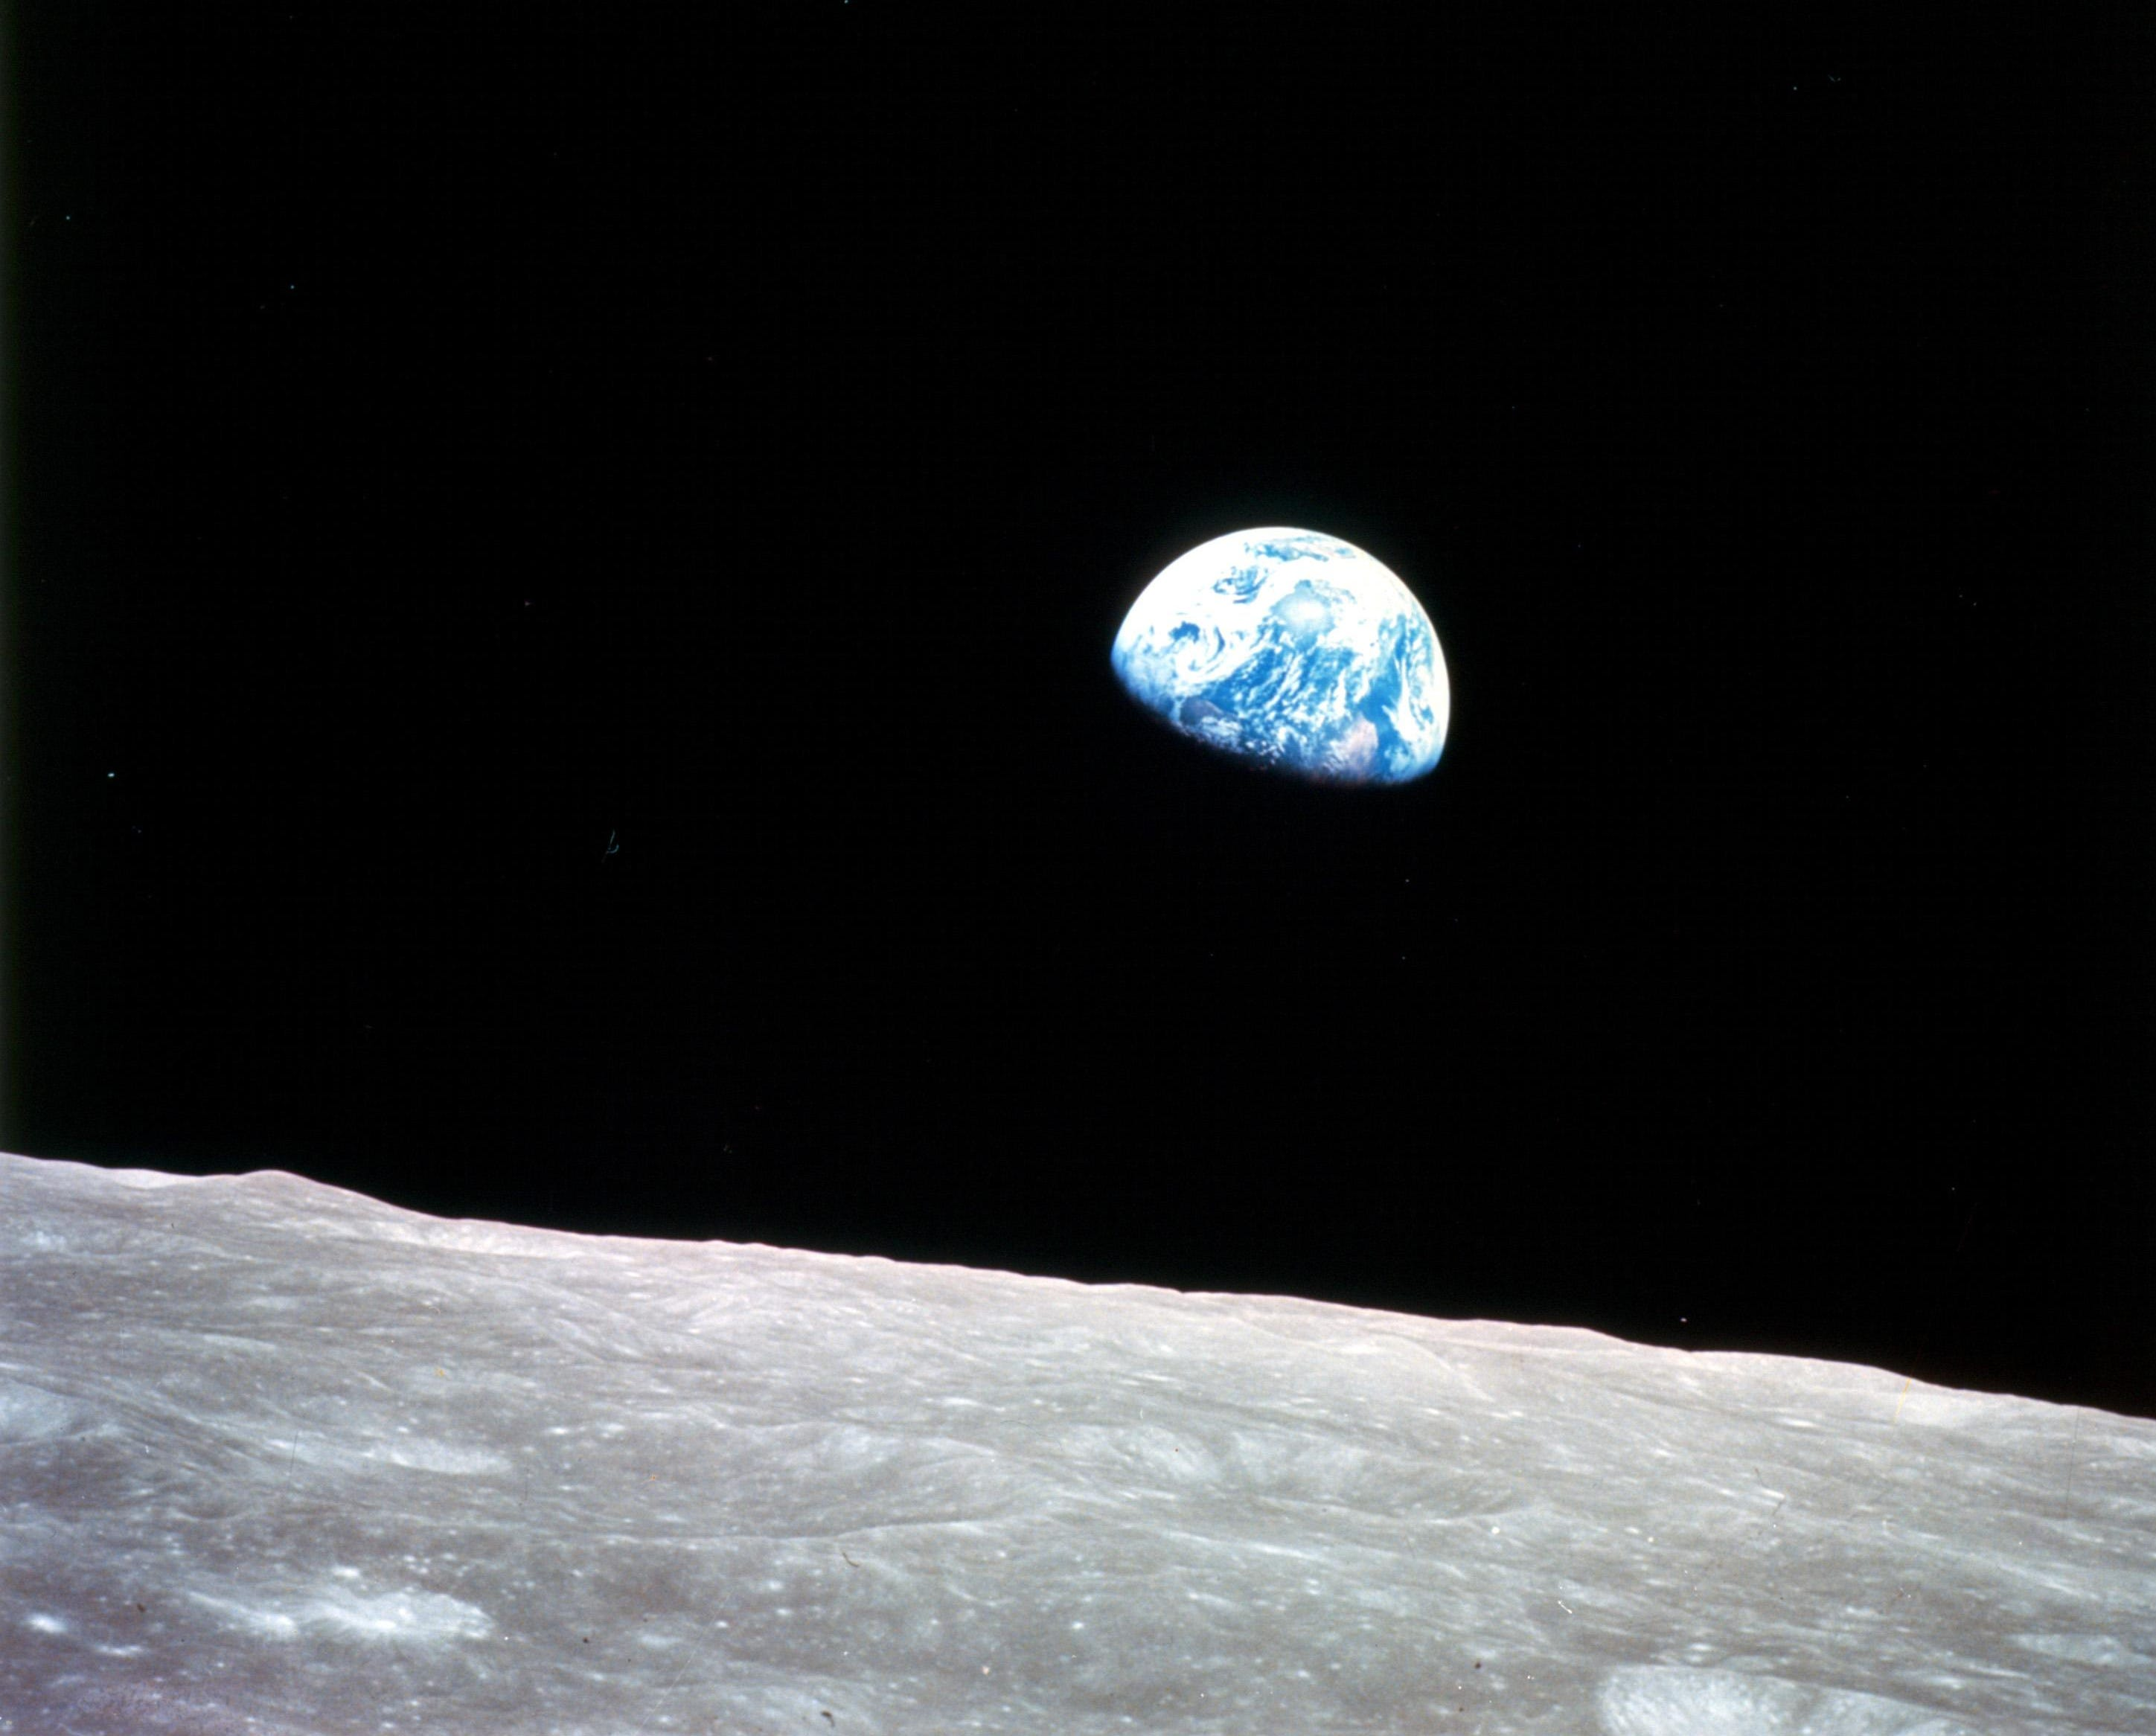 """The famous """"Earthrise"""" image captured by the Apollo 8 crew on Christmas Eve 1968. The mission was the first to send humans beyond low-Earth orbit."""